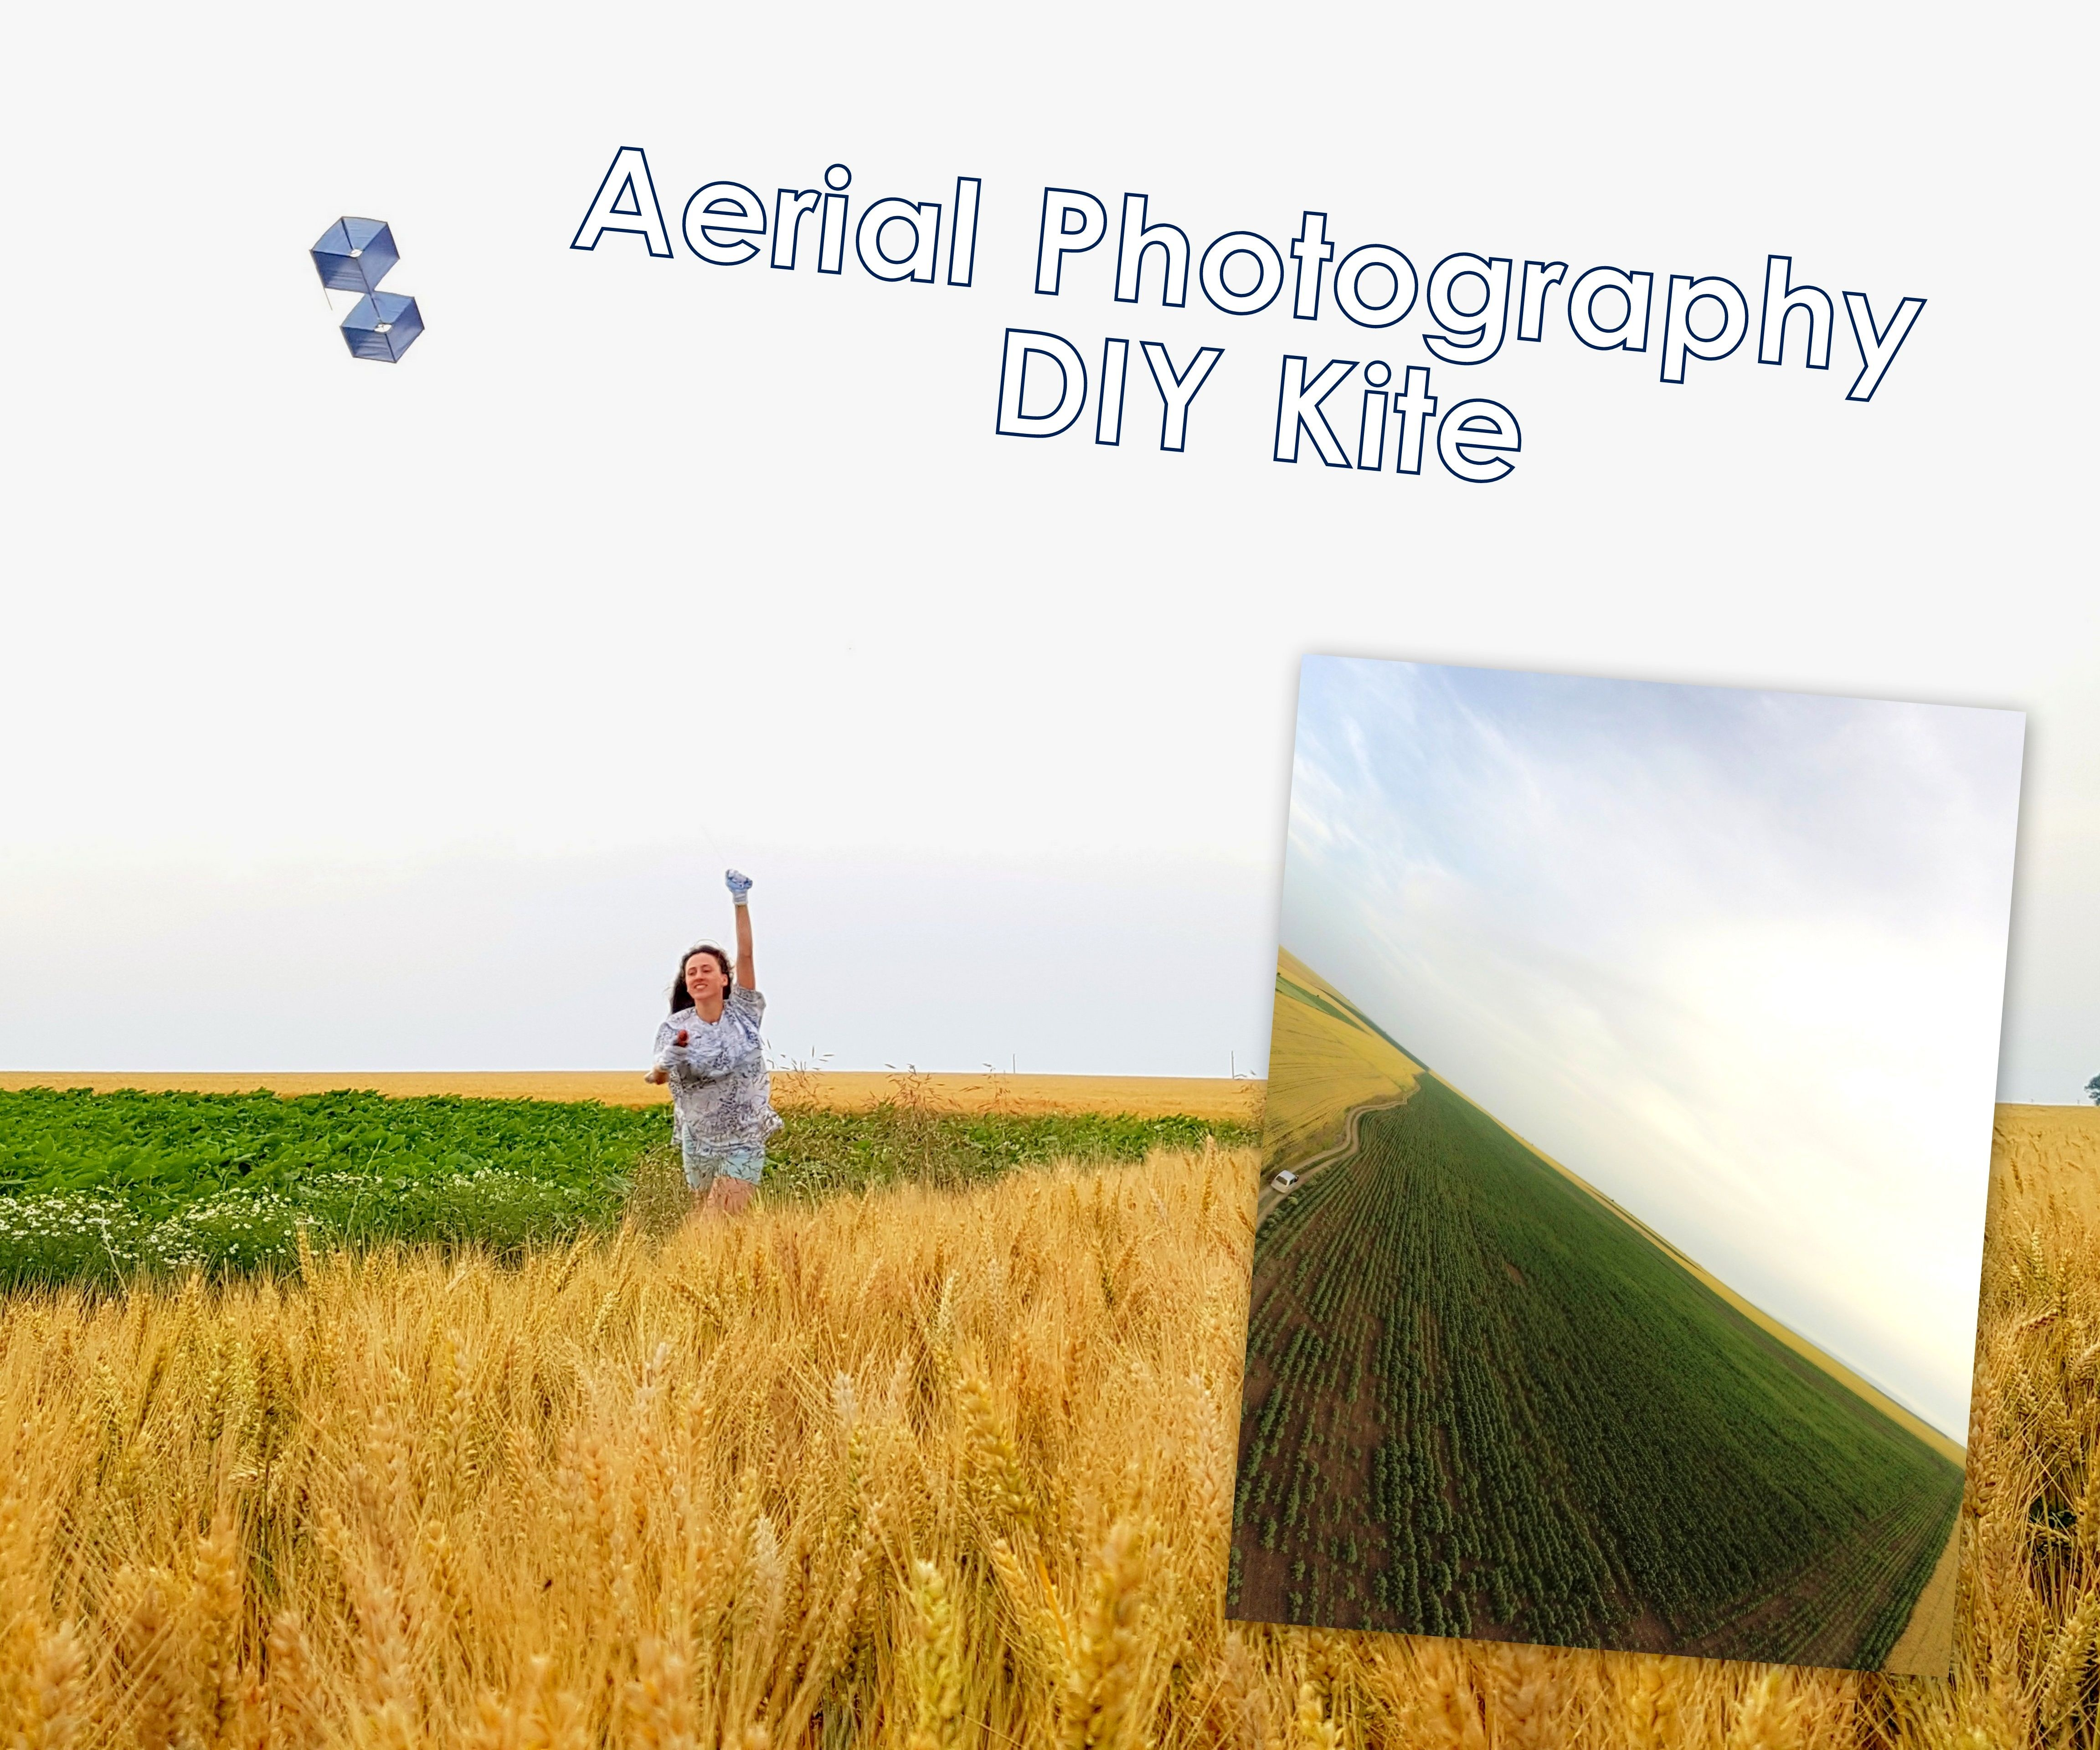 Aerial Photography Super Affordable Kite